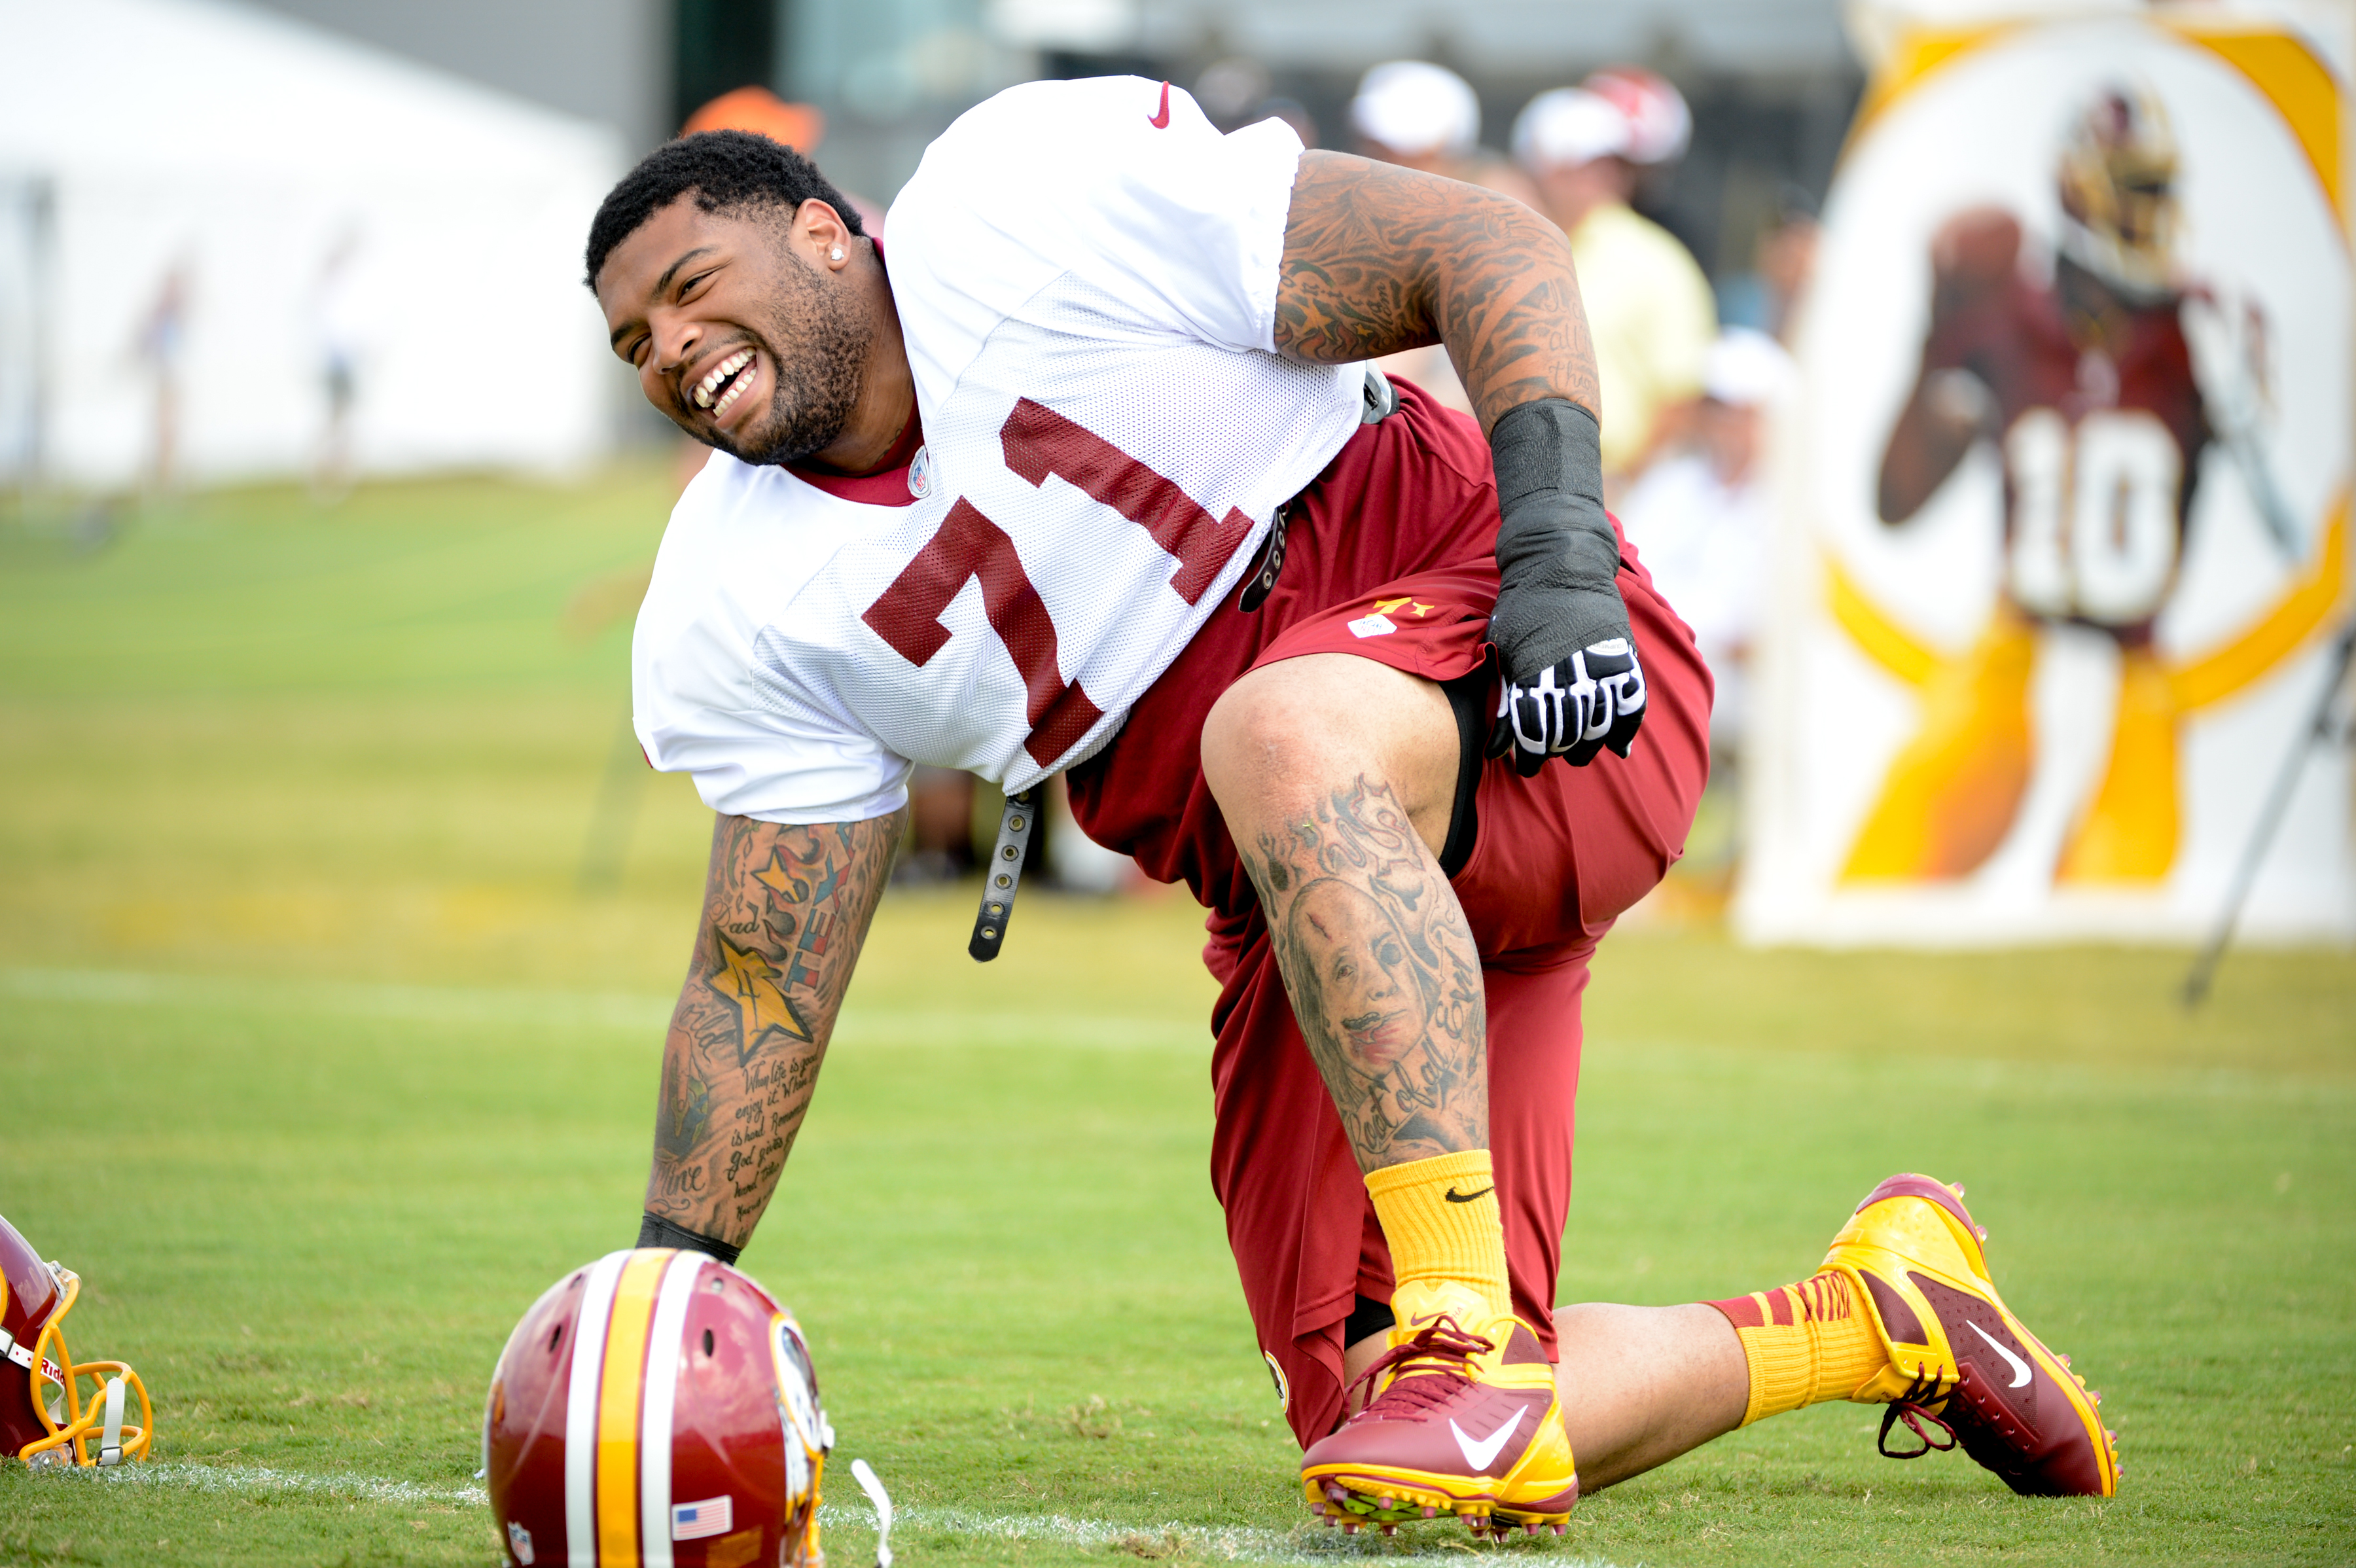 Redskins notes Trent Williams claims umpire cursed at him during